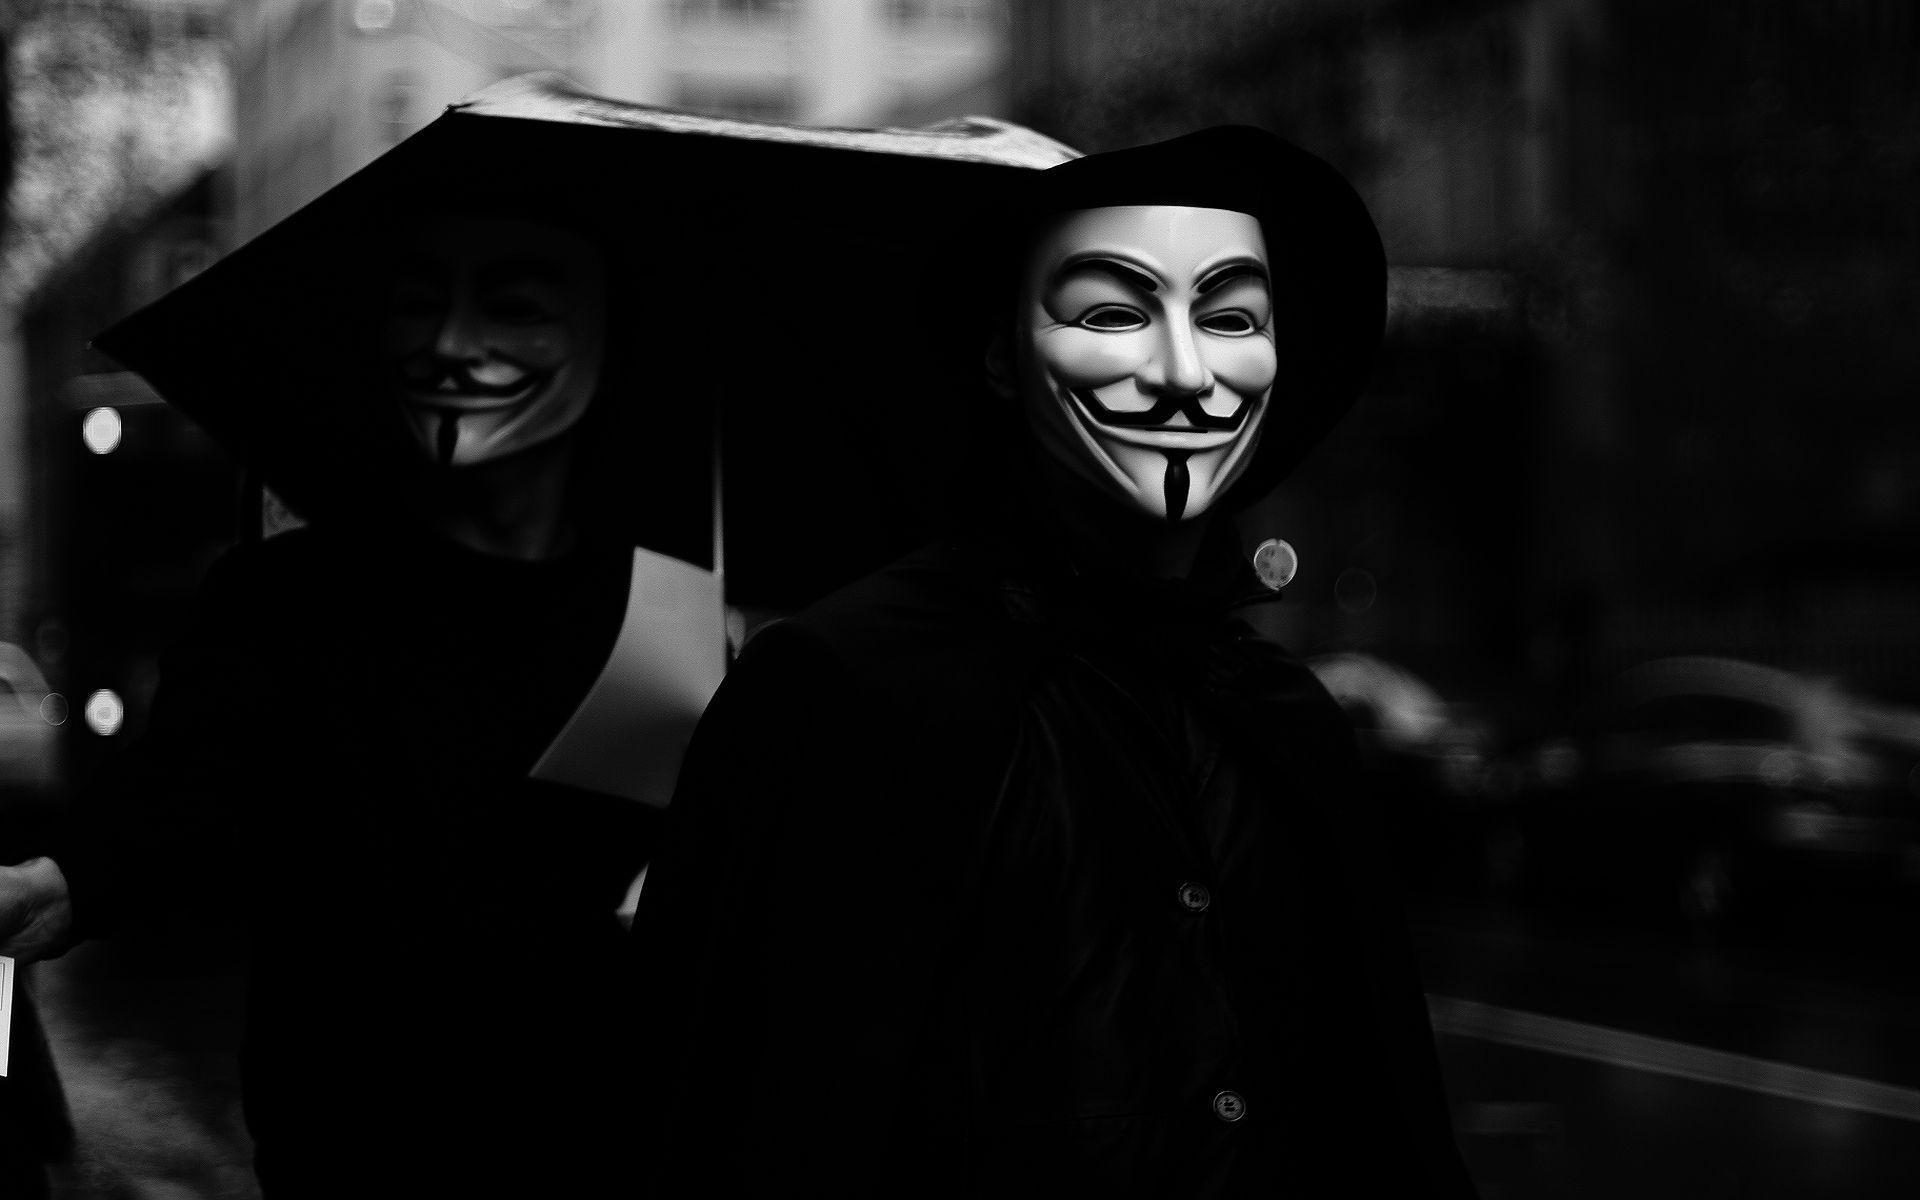 V For Vendetta Wallpapers Man In Anonymous Mask 2213551 Hd